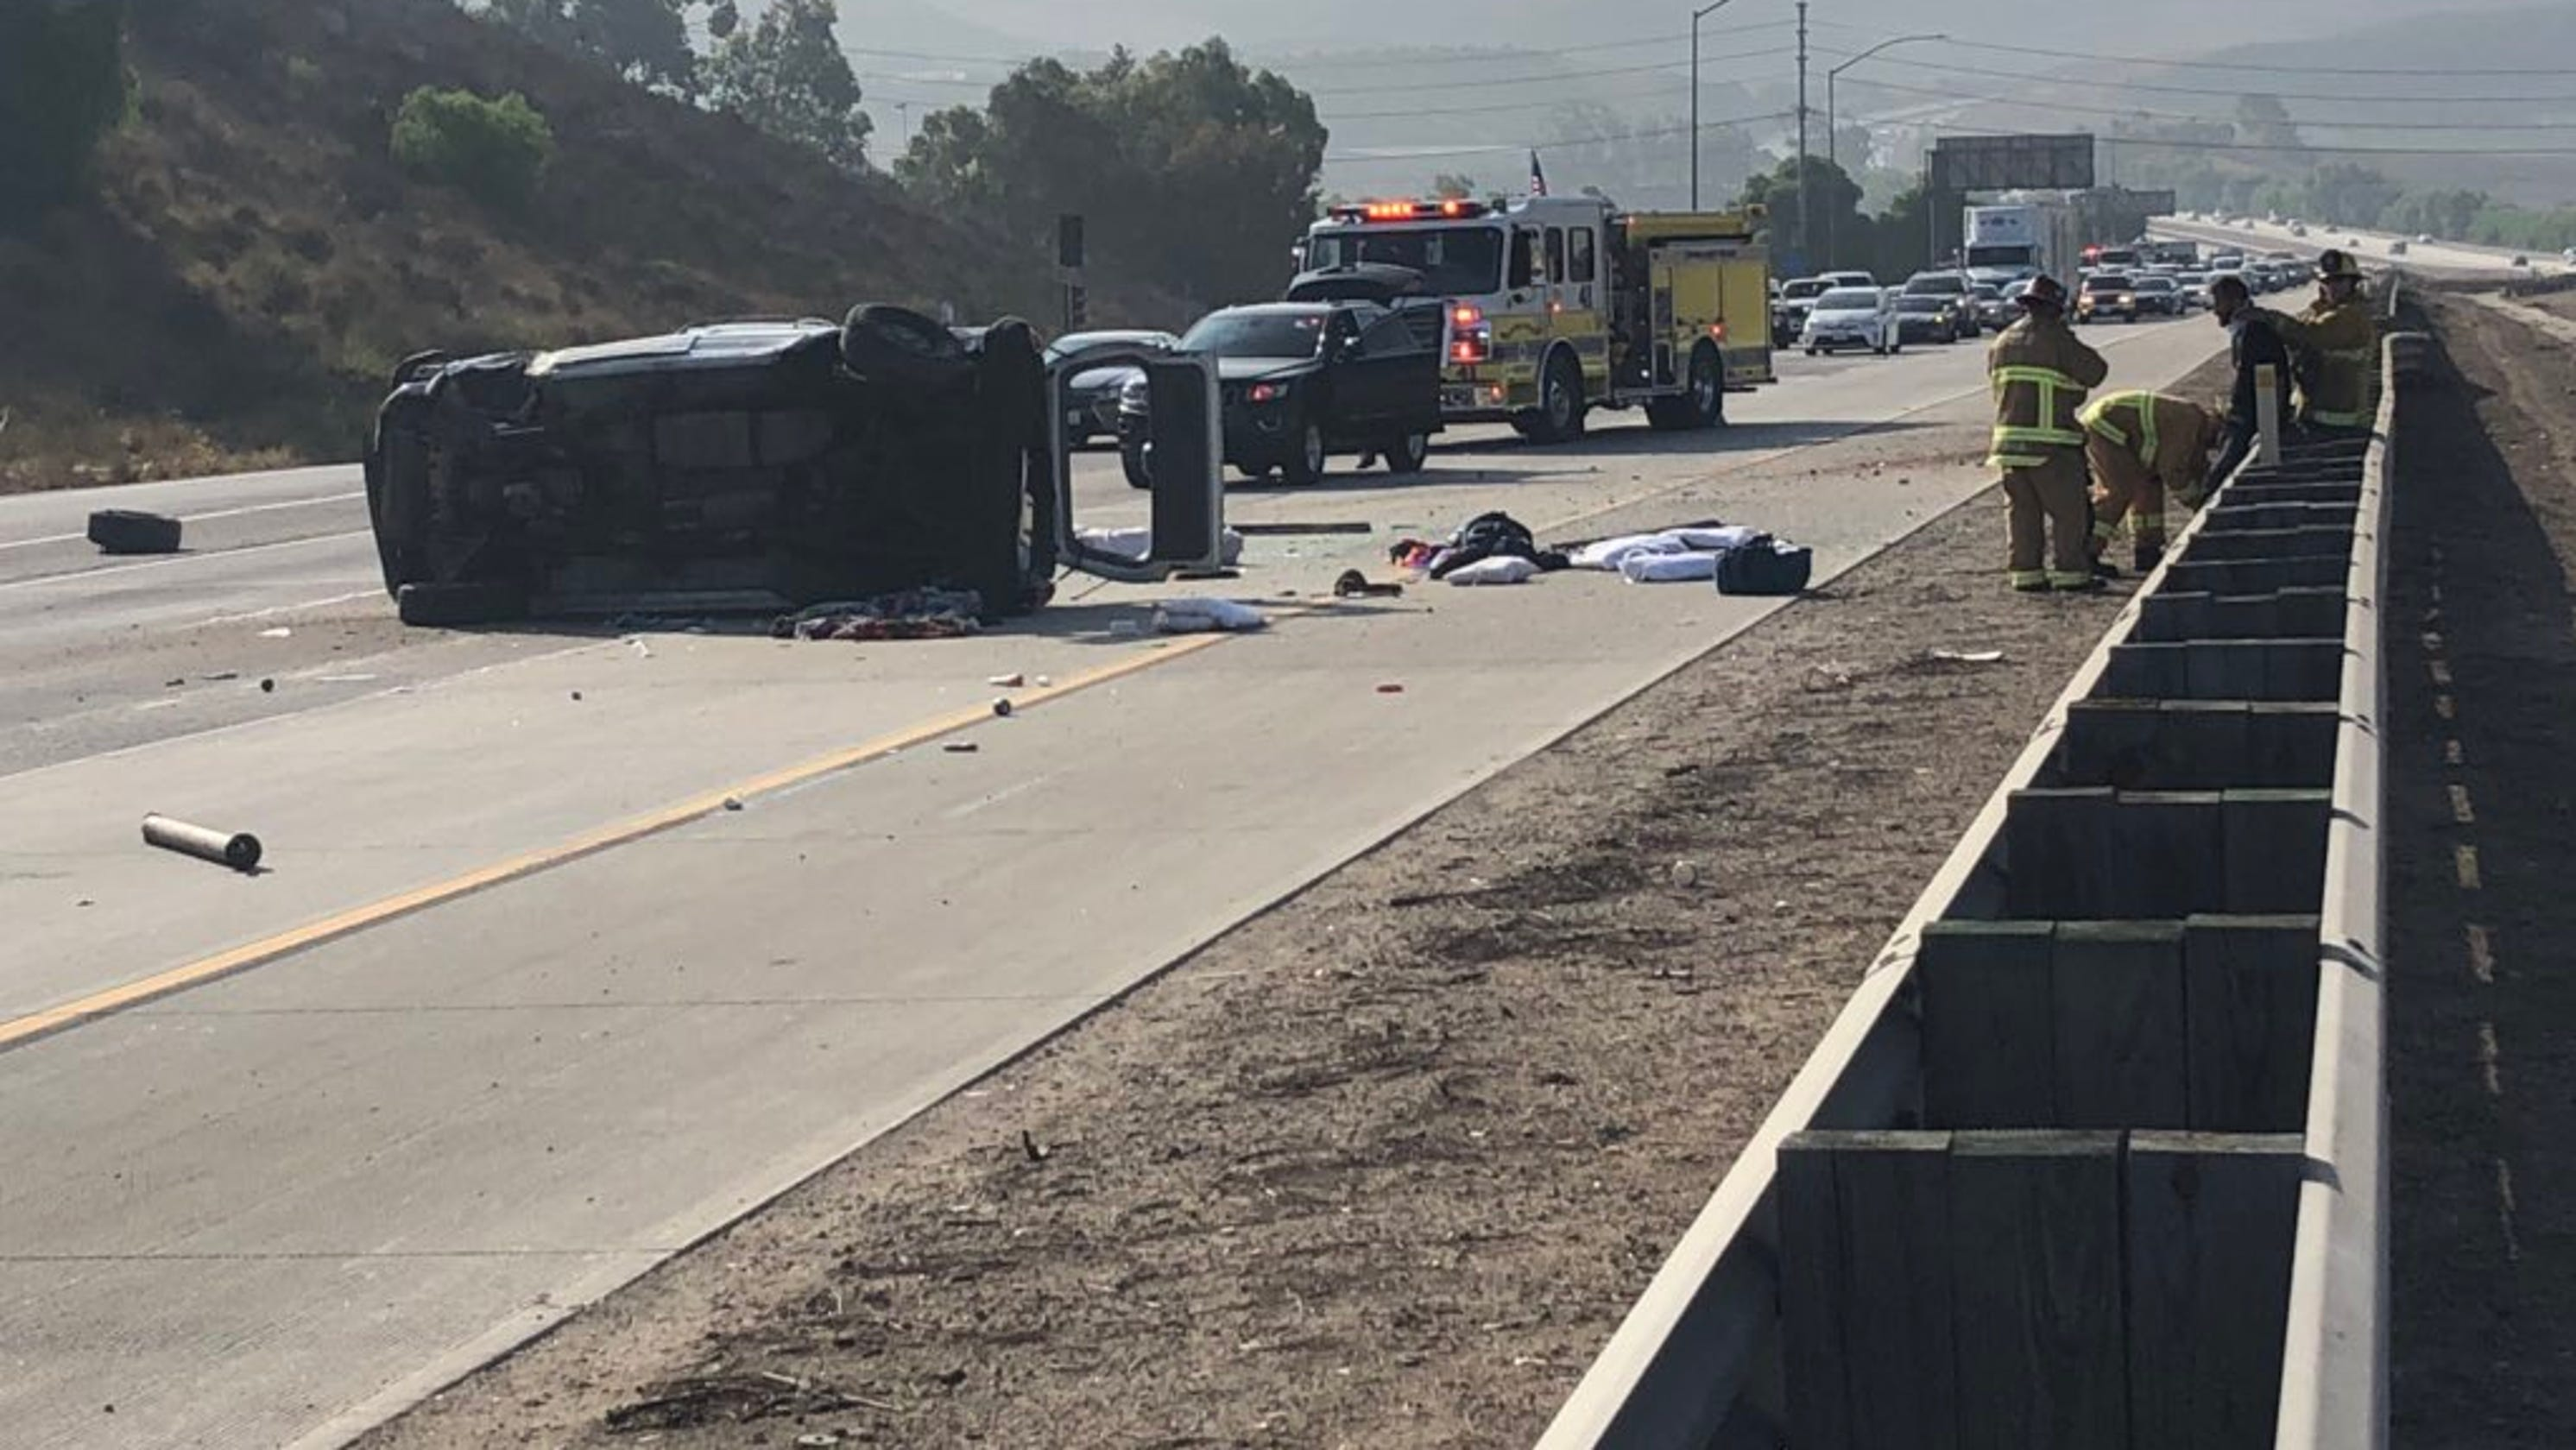 Lanes cleared after crash on Highway 23 in Moorpark slows